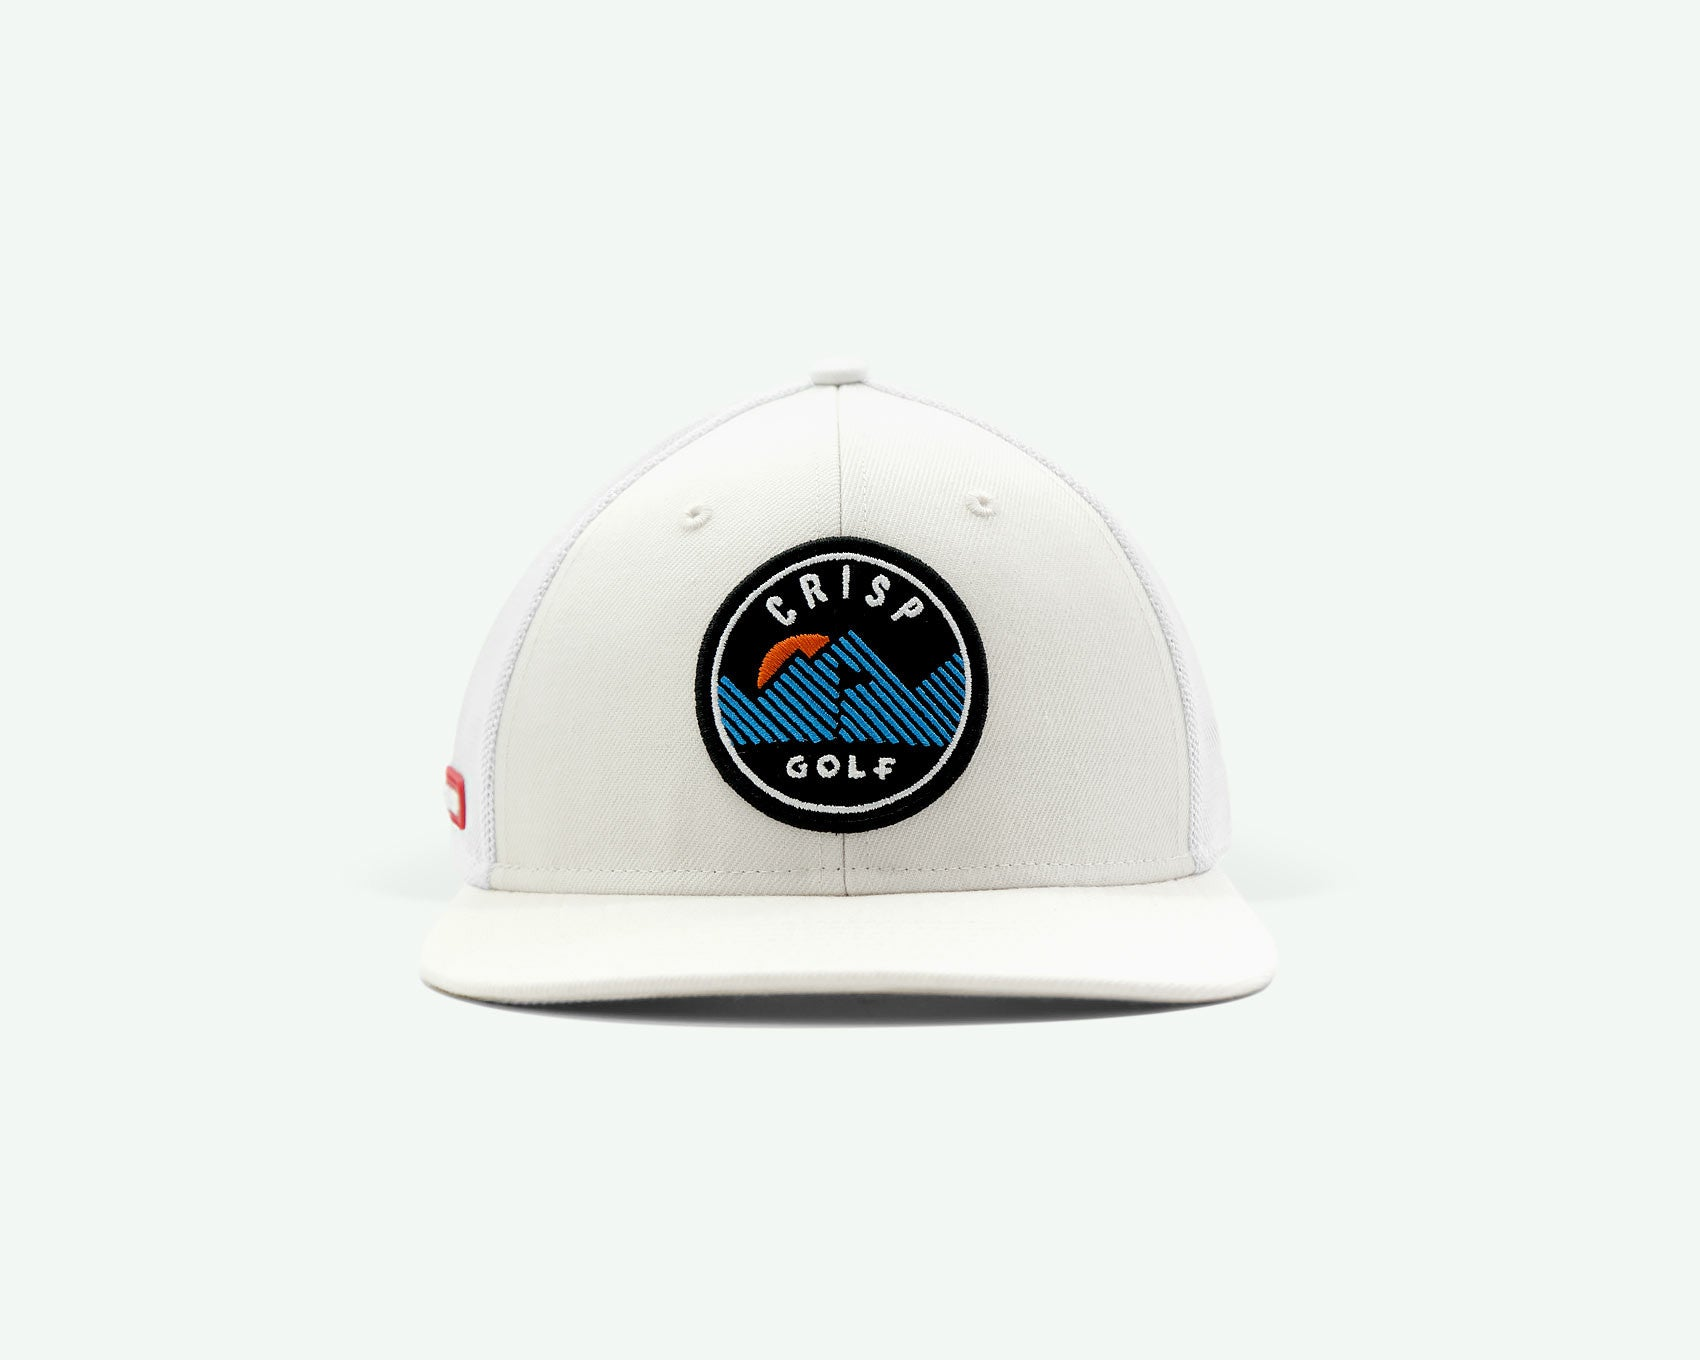 103 series off white structured 6-panel golf cap with a wool blend crown, fine mesh side/back panels, a plastic closure and an embroidery patch mountain logo